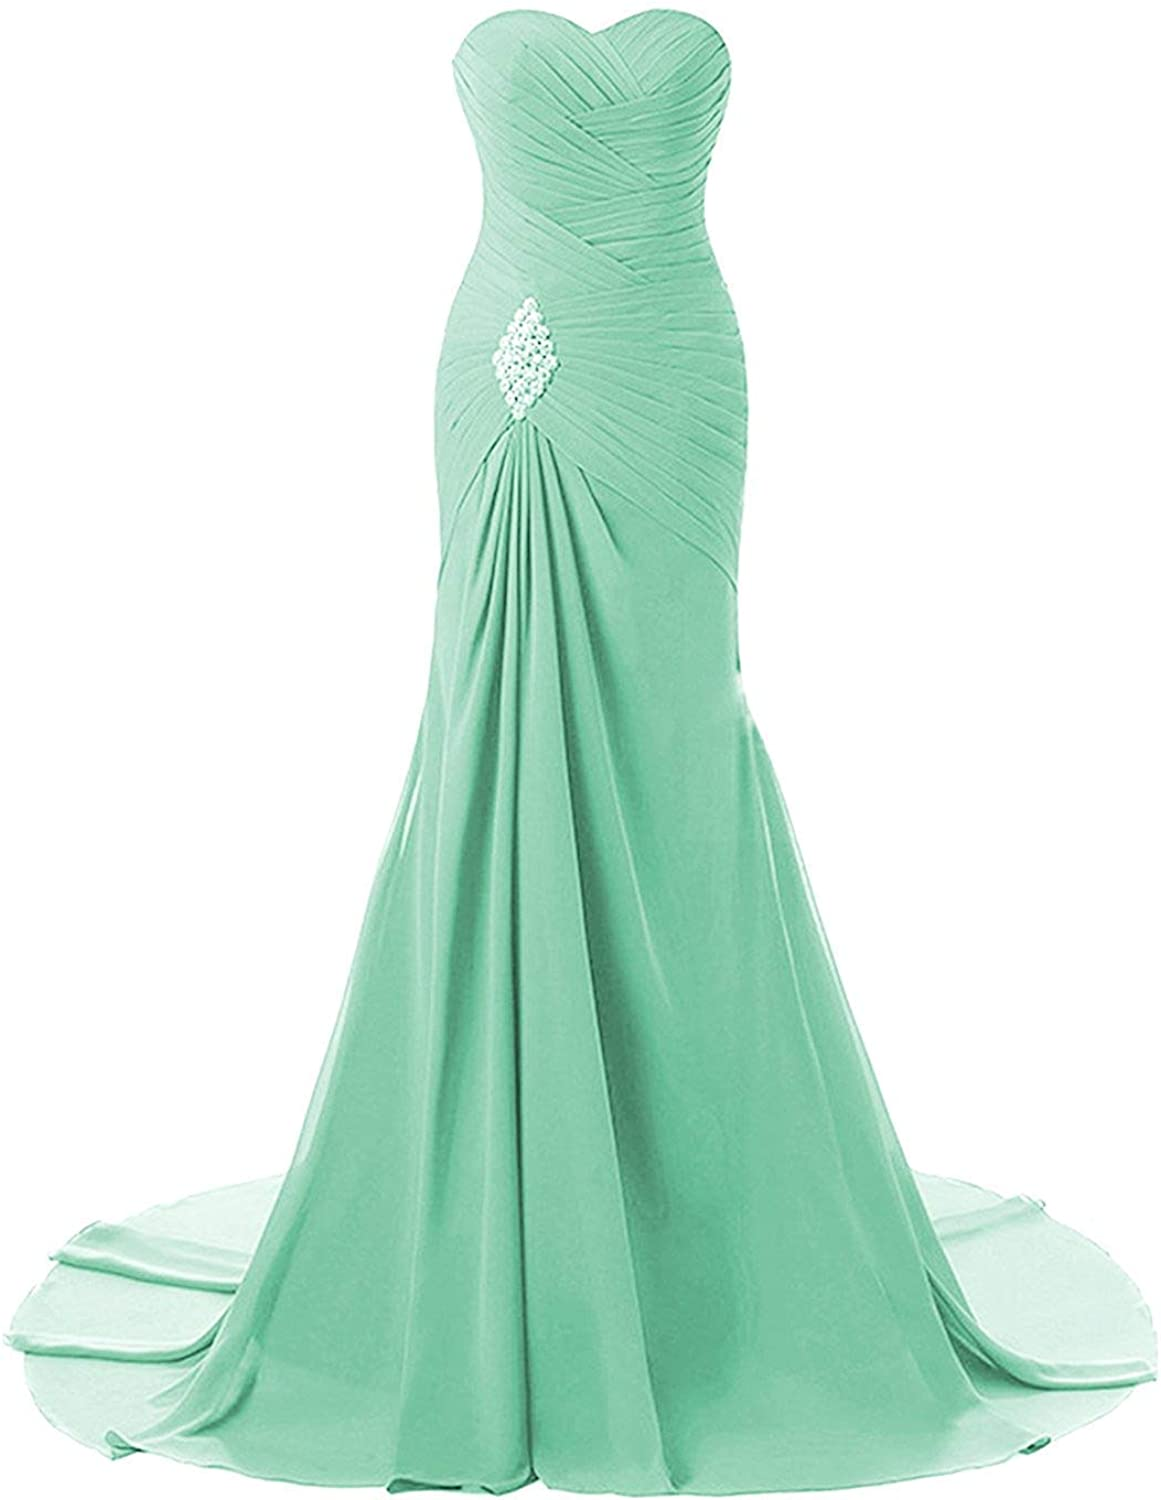 Sulidi Womens Sweetheart Mermaid Prom Bridesmaid Dresses 2018 Long Evening Formal Party Ball Gowns C247